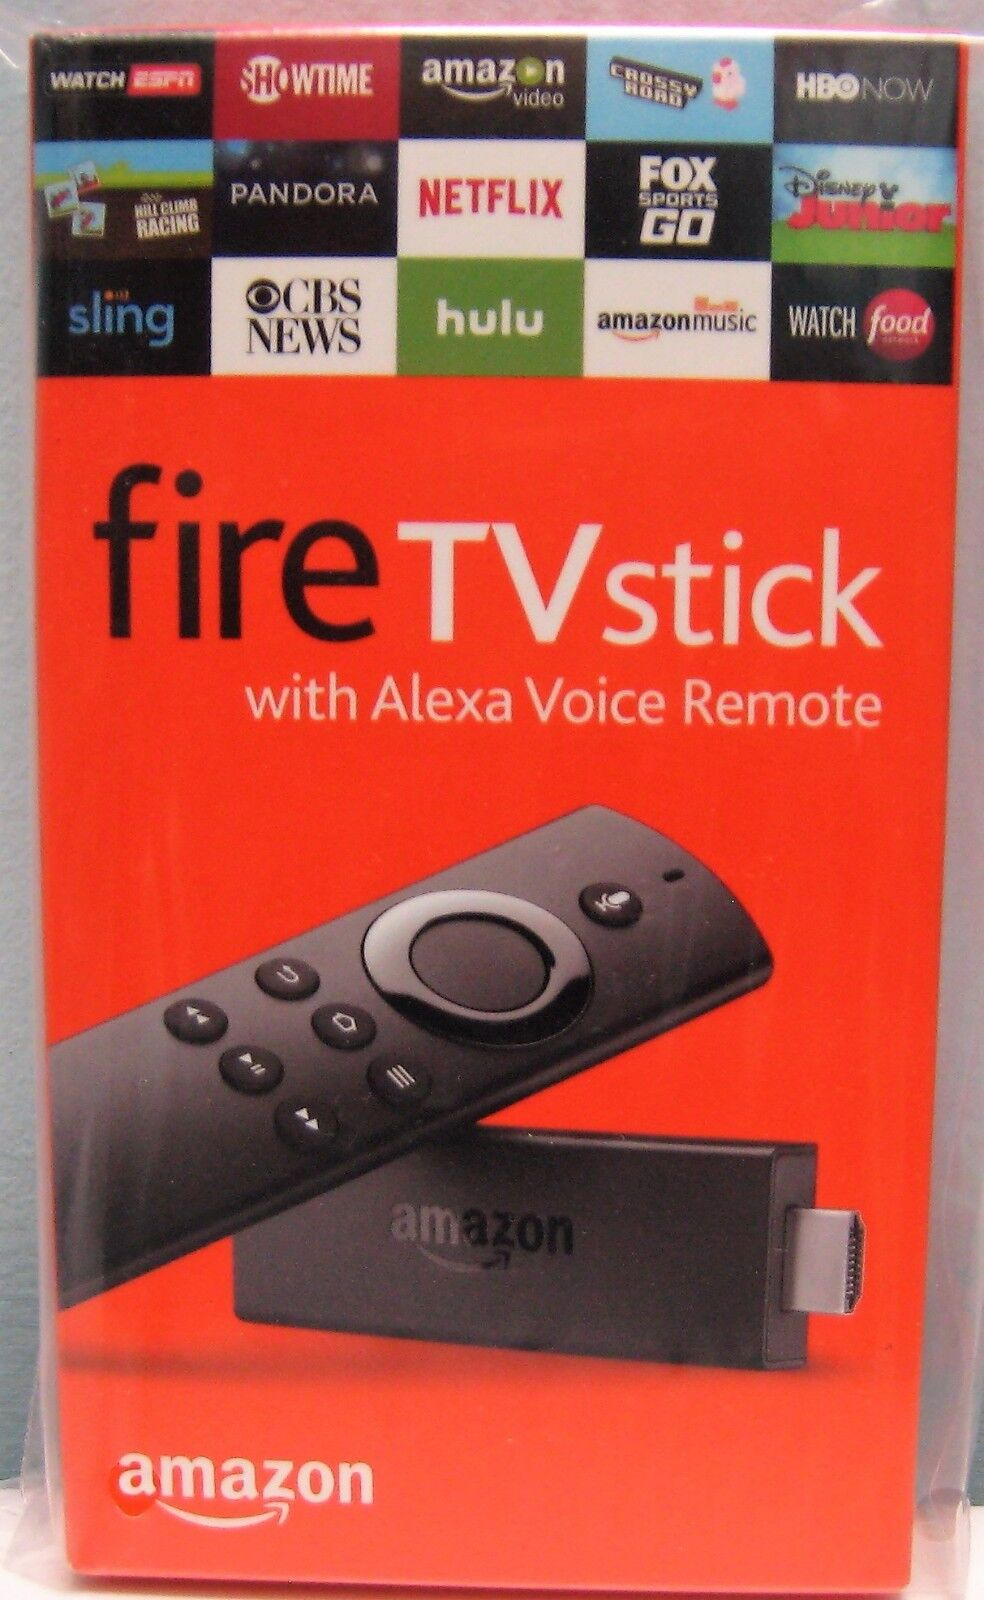 $39.95 - AMAZON FIRE TV STICK WITH ALEXA VOICE REMOTE NEWEST 2ND GENERATION , NEW IN BOX